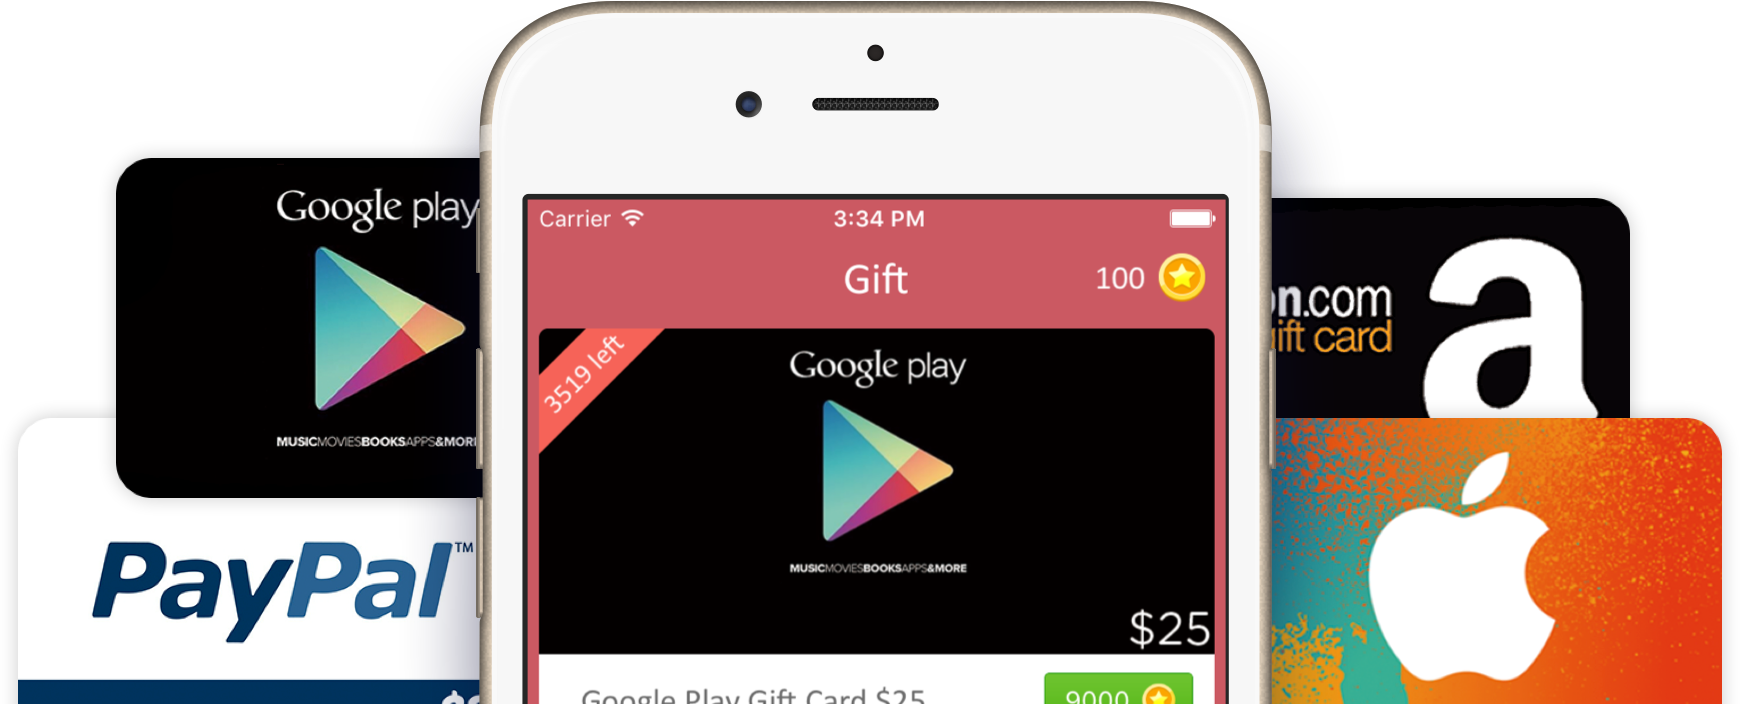 Get this app you will get free gift cards use my code to get 100